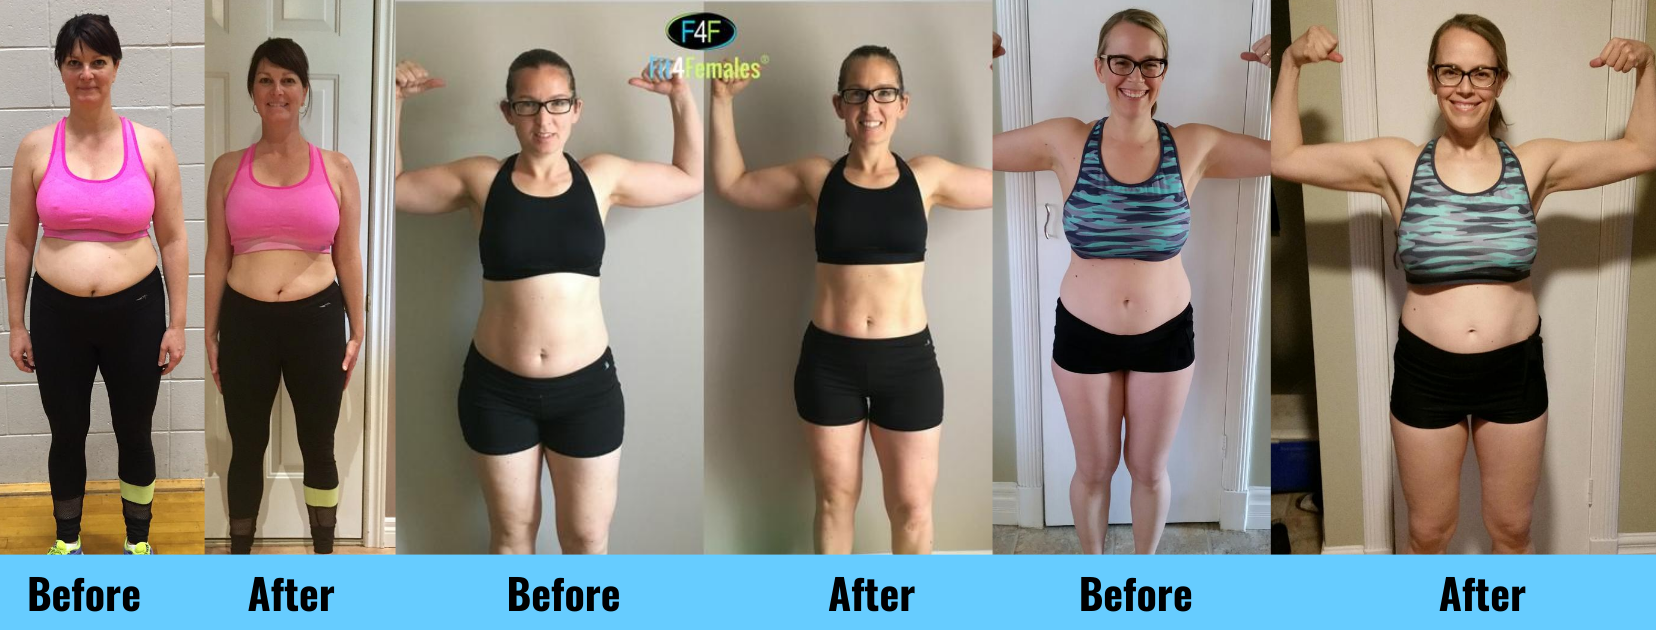 6-week-fit-fierce-transformation-before-after-